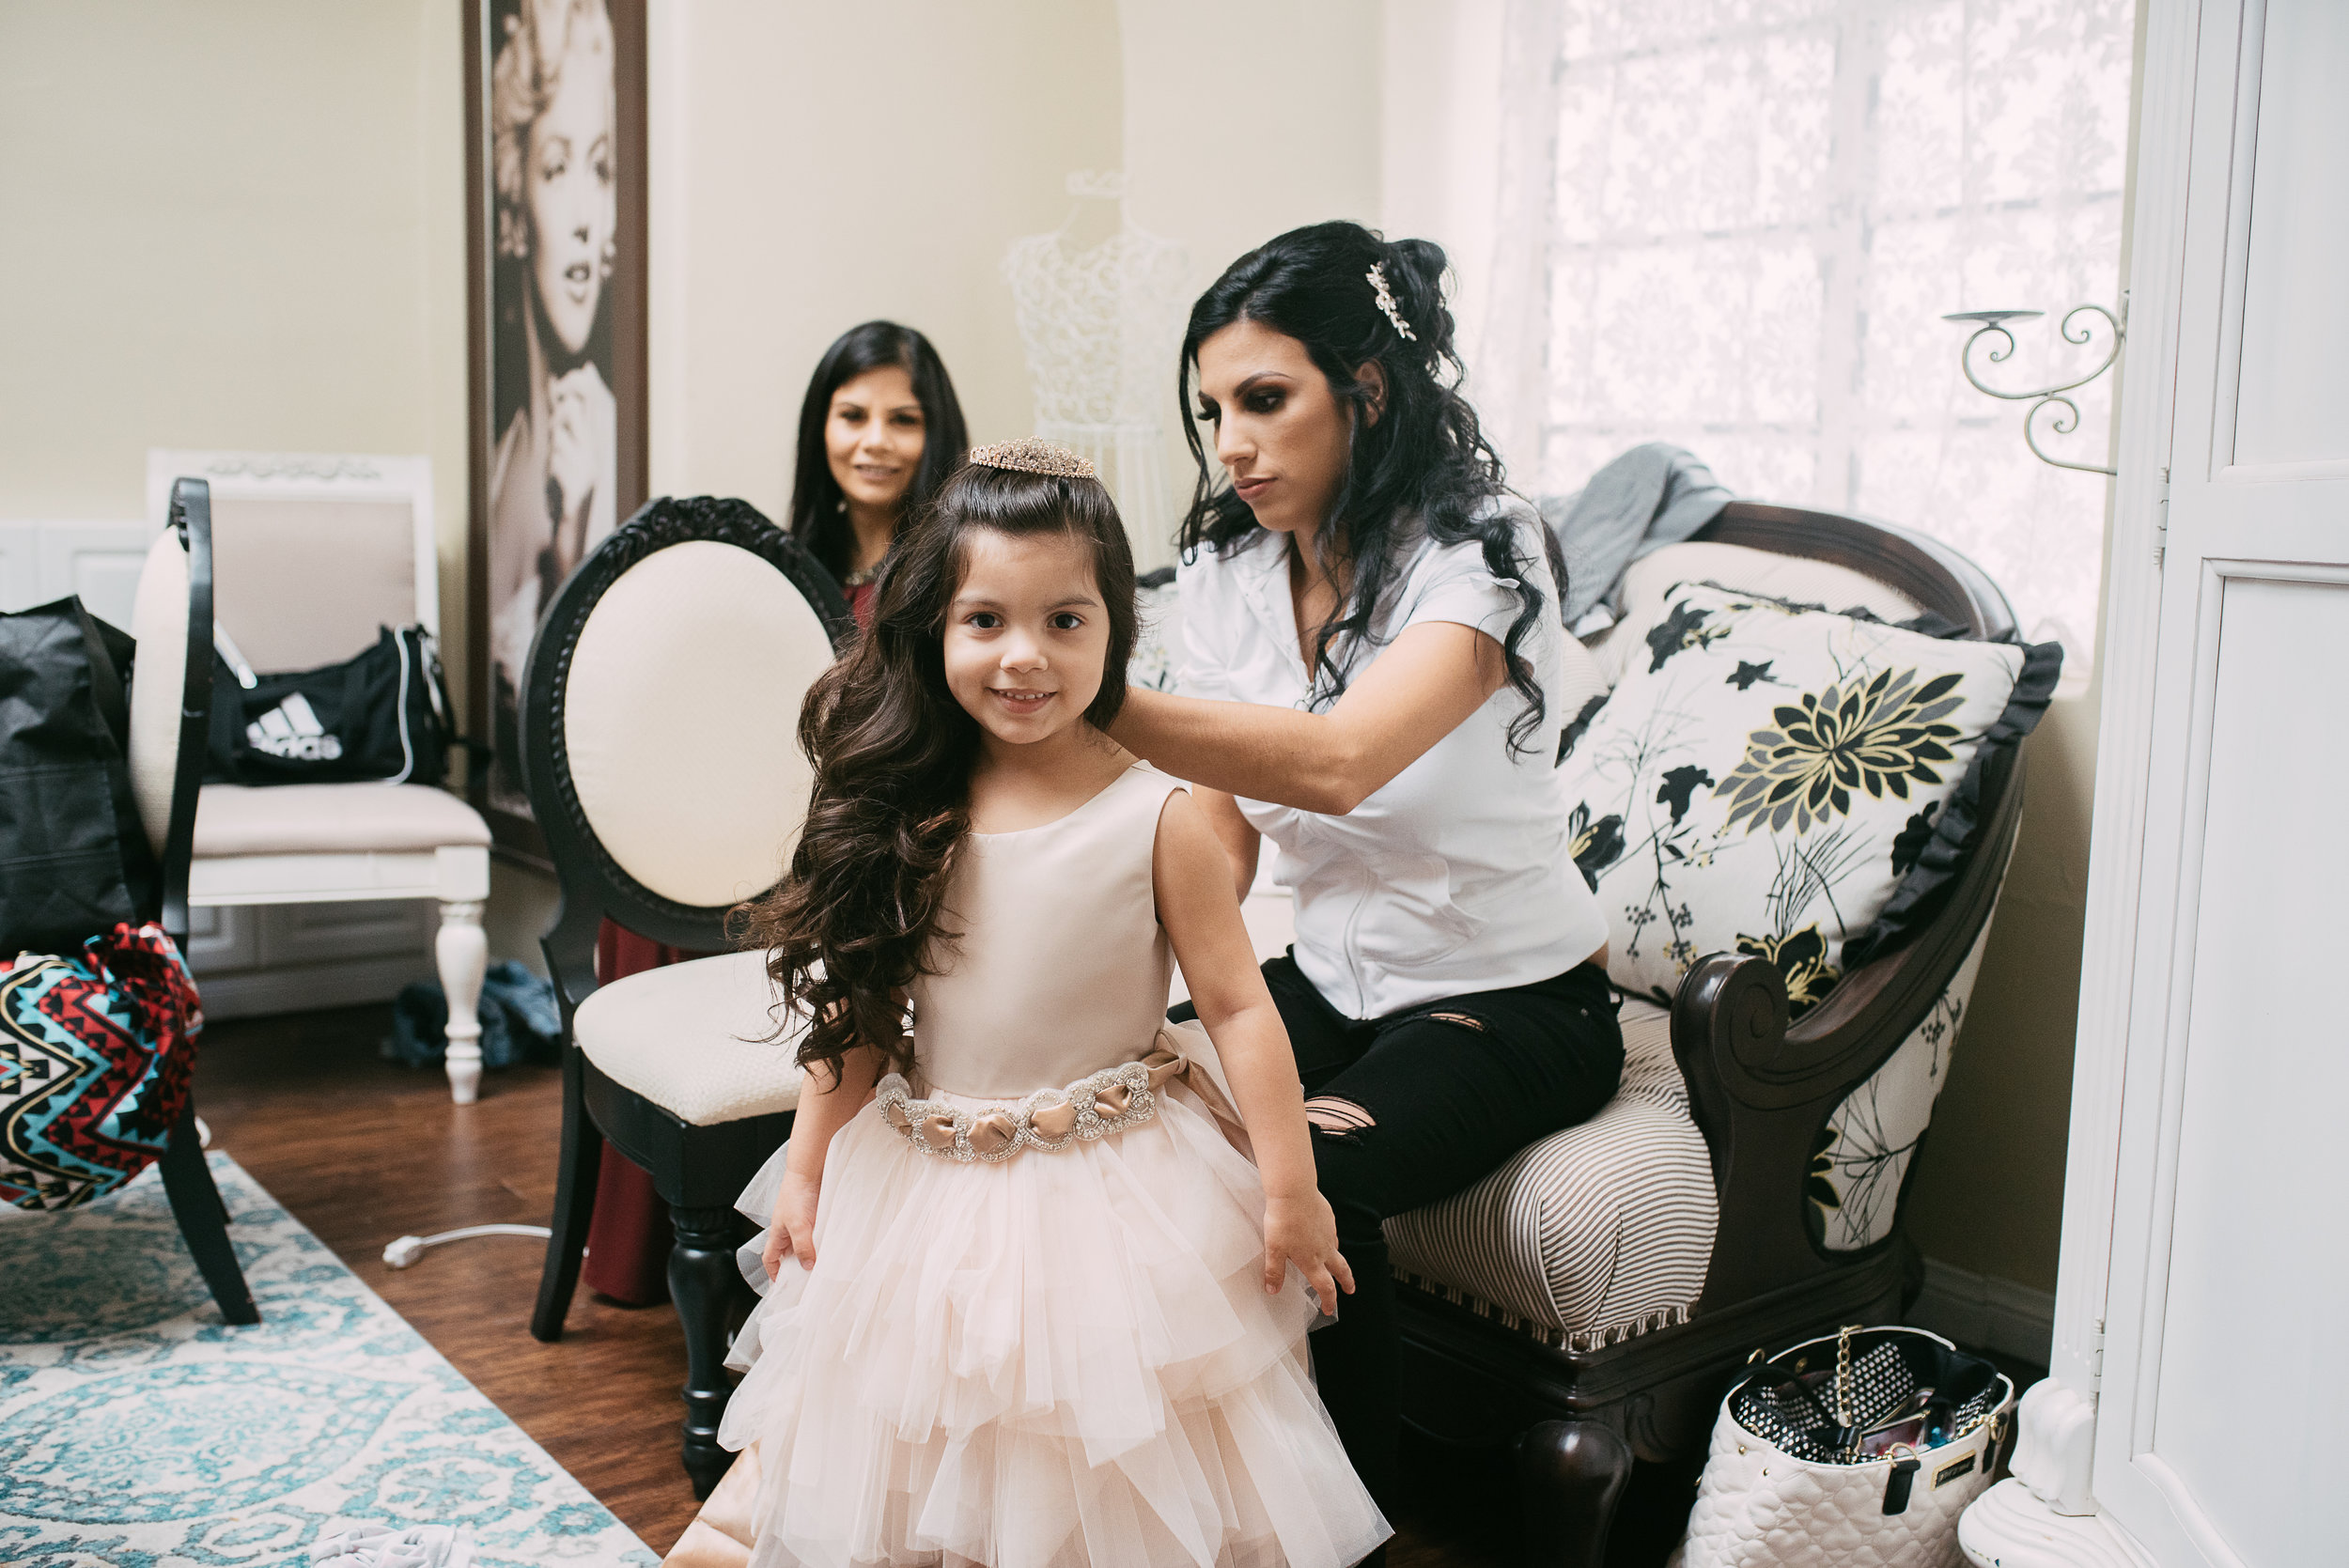 loft-84-riverside-maura-wedding-getting-ready-14-2.jpg